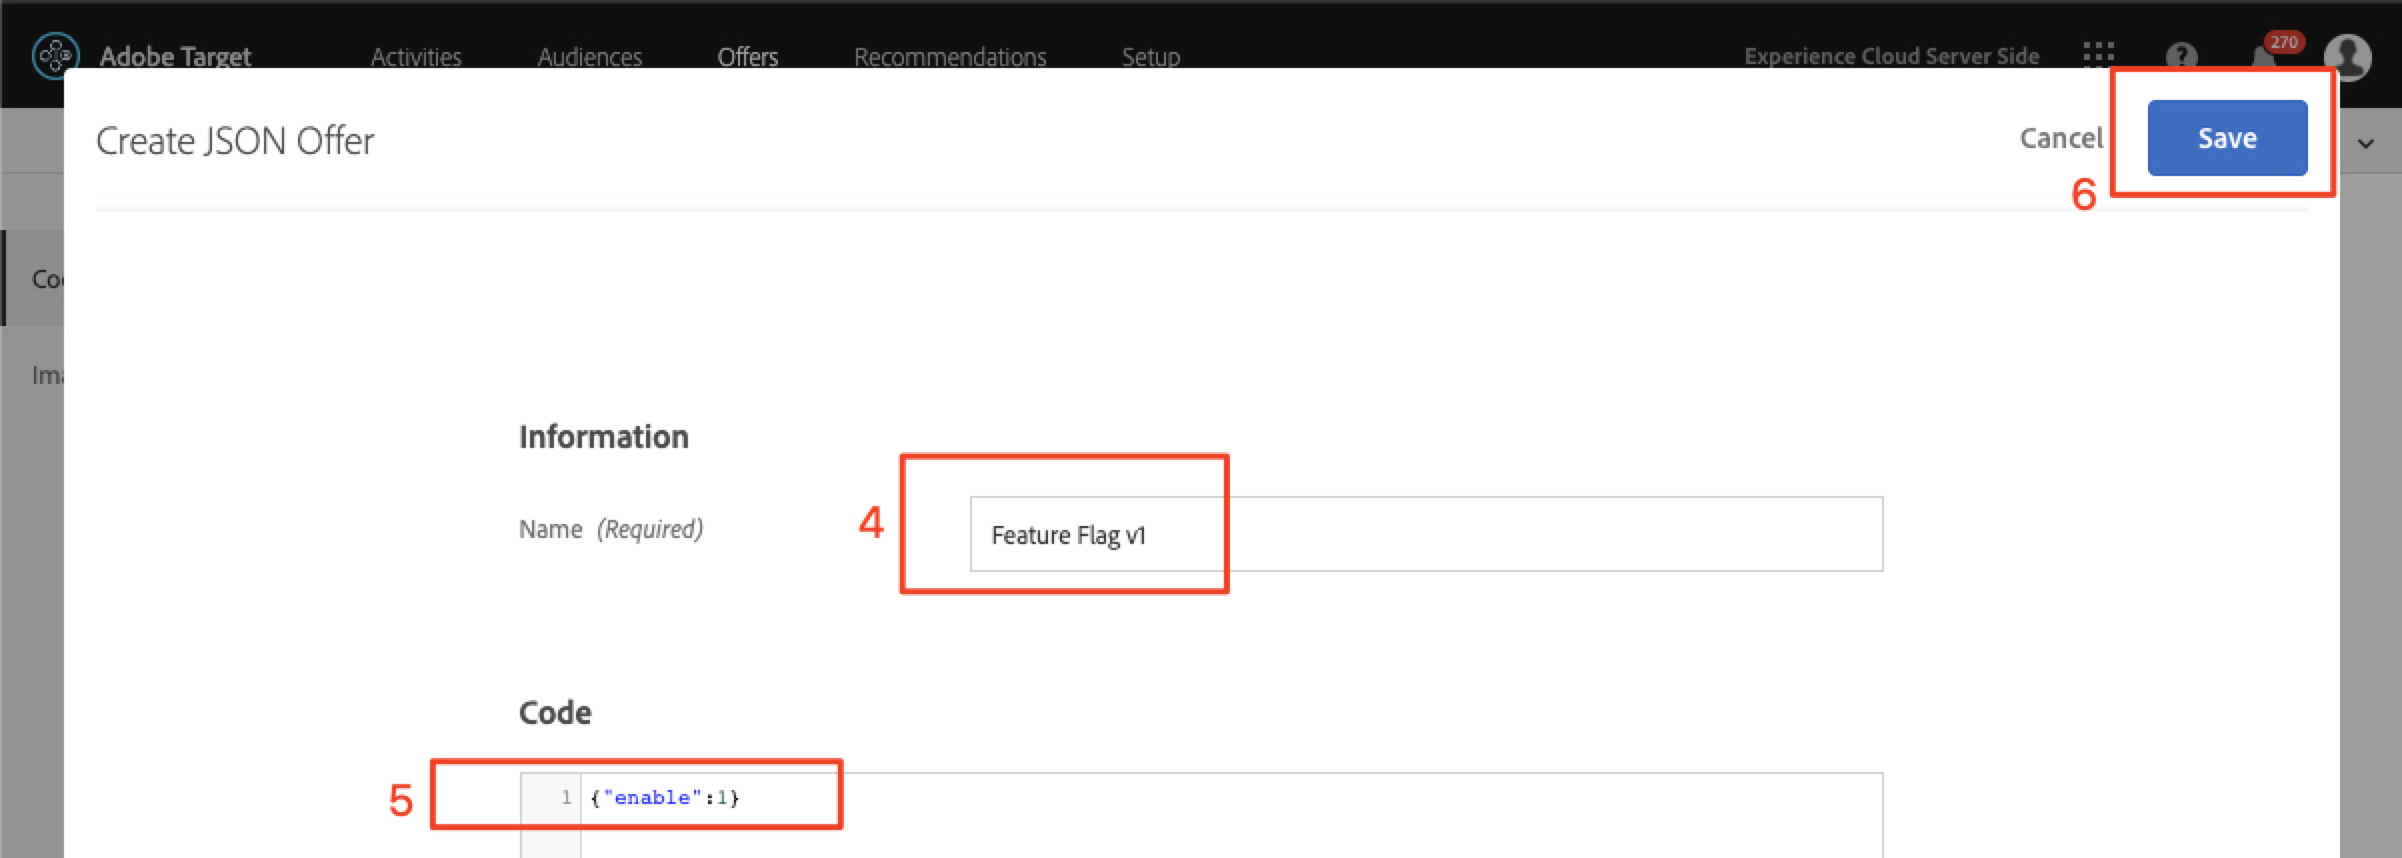 feature_flag_v1 JSON Offer